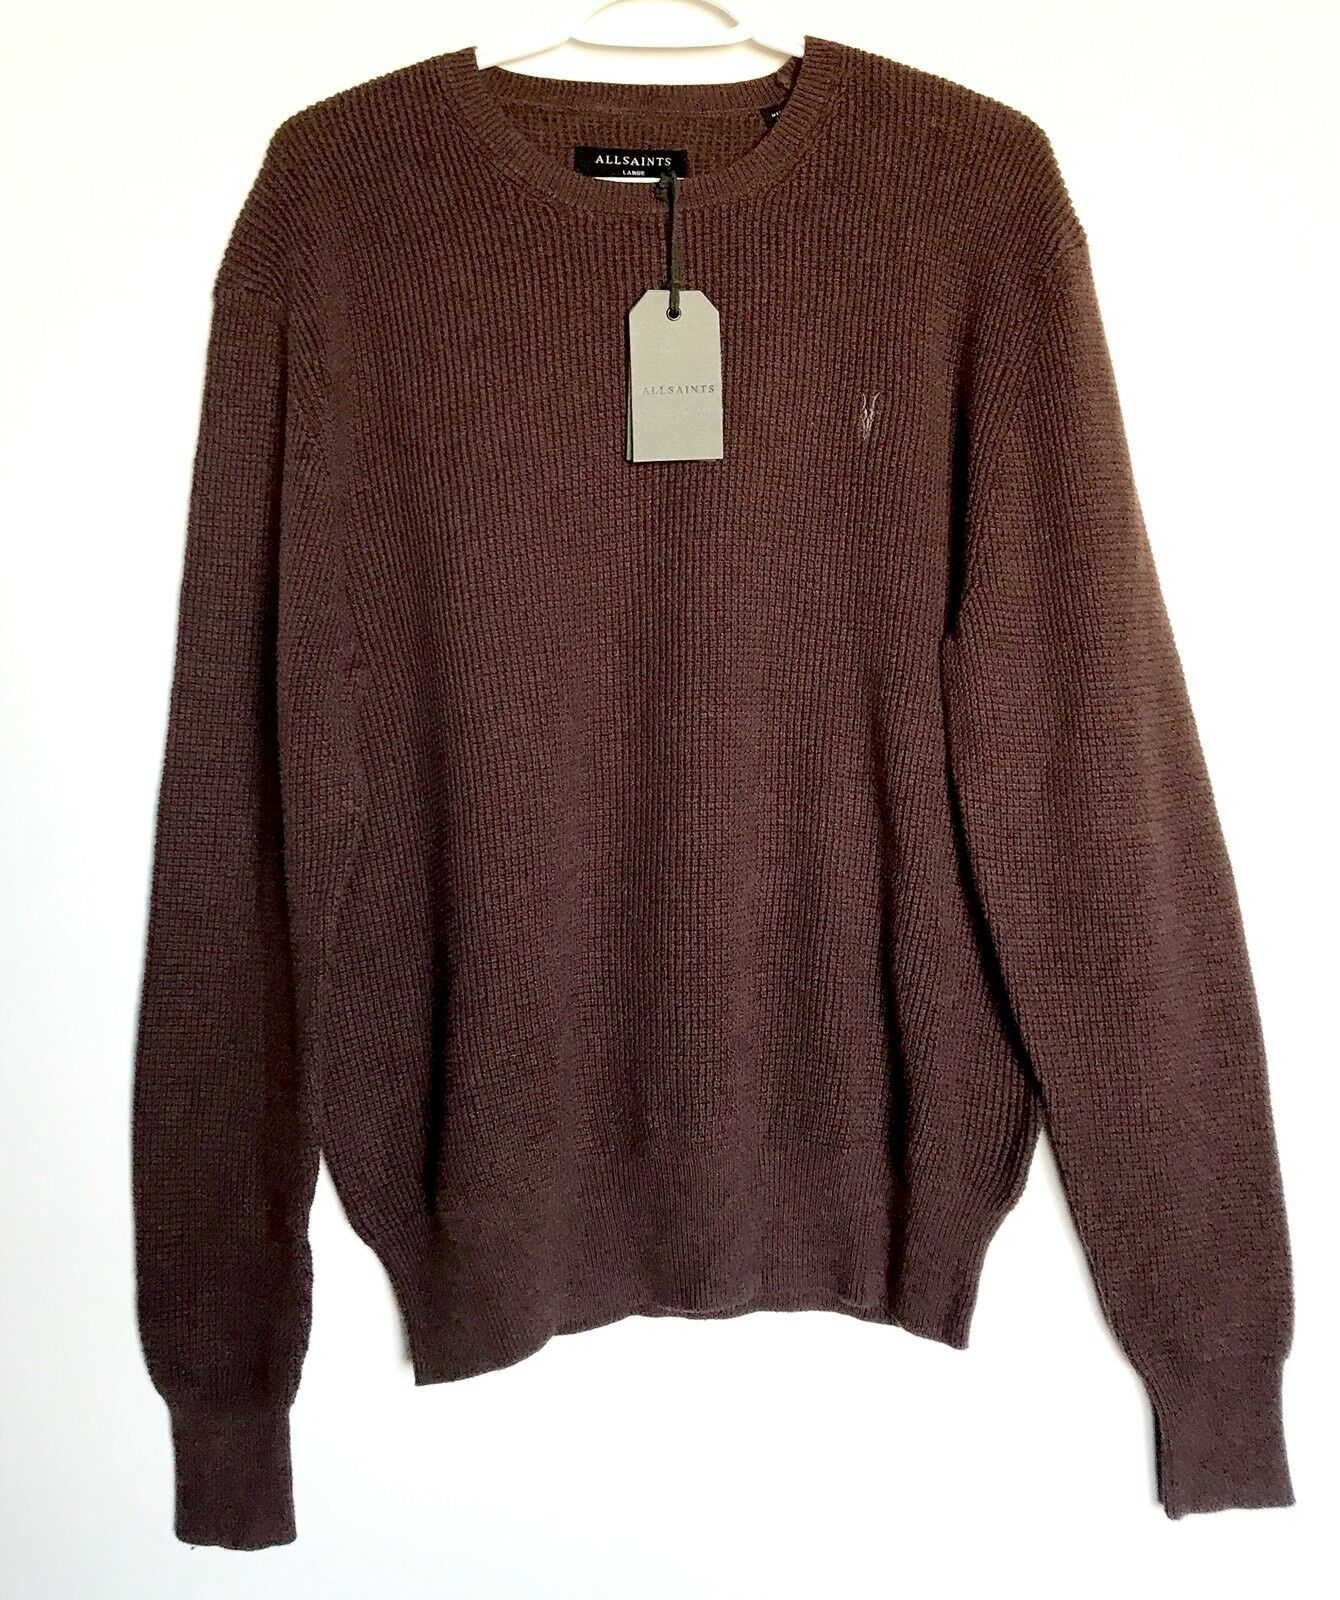 AllSaints Trias Crew Knitwear Retail 140 NWT Price 78 All Saints L